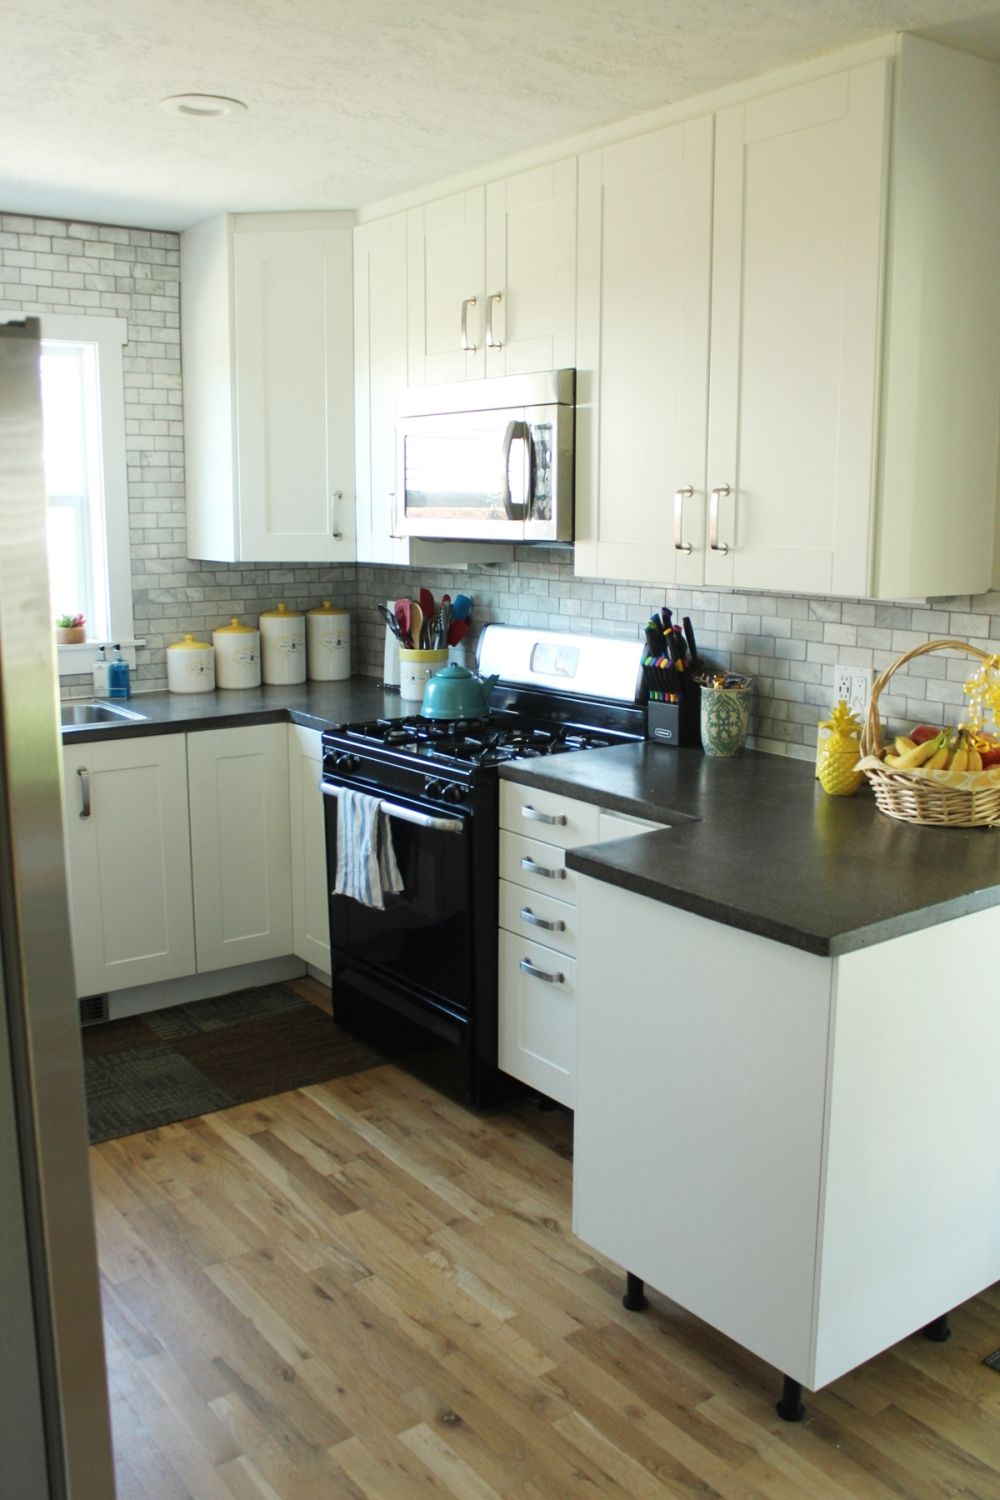 How to Decorate a Kitchen…Without Losing Countertop Space on How To Decorate A Kitchen Counter  id=11591